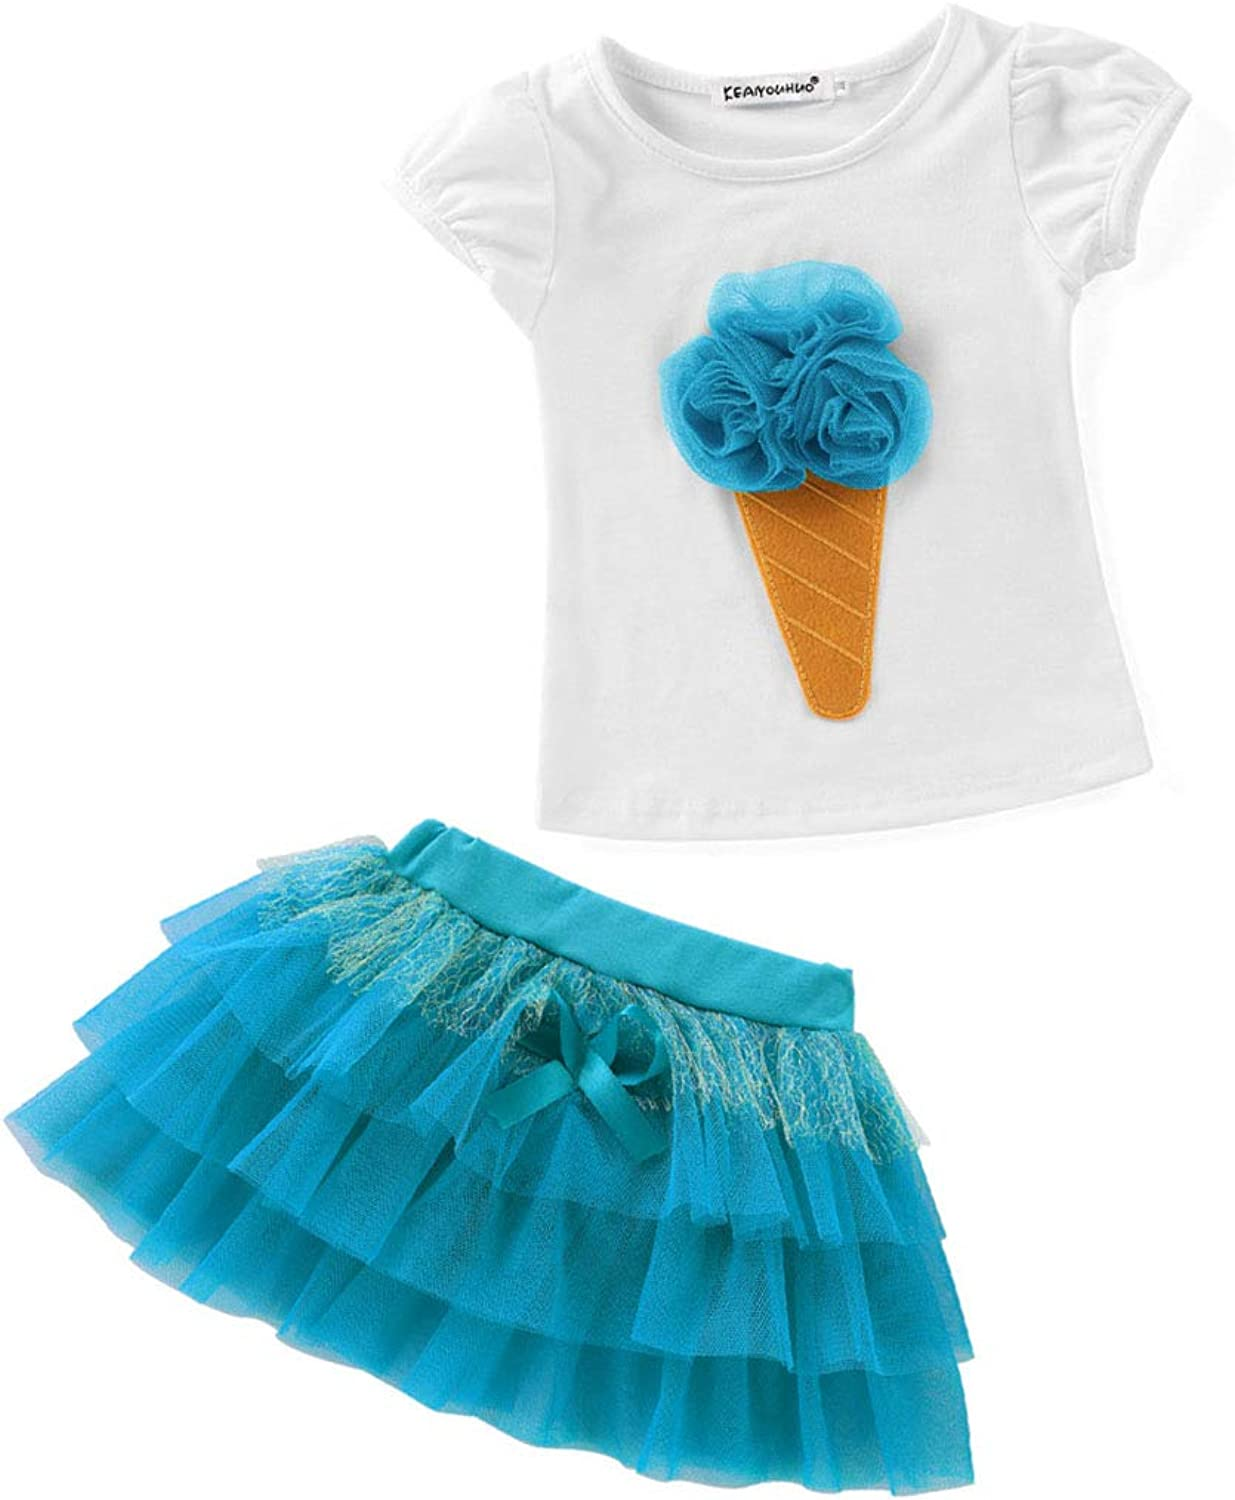 KERVINJESSIE Cute Baby Clothes Two Pcs Set Tshirt and Tutu Dress Summer Outfit